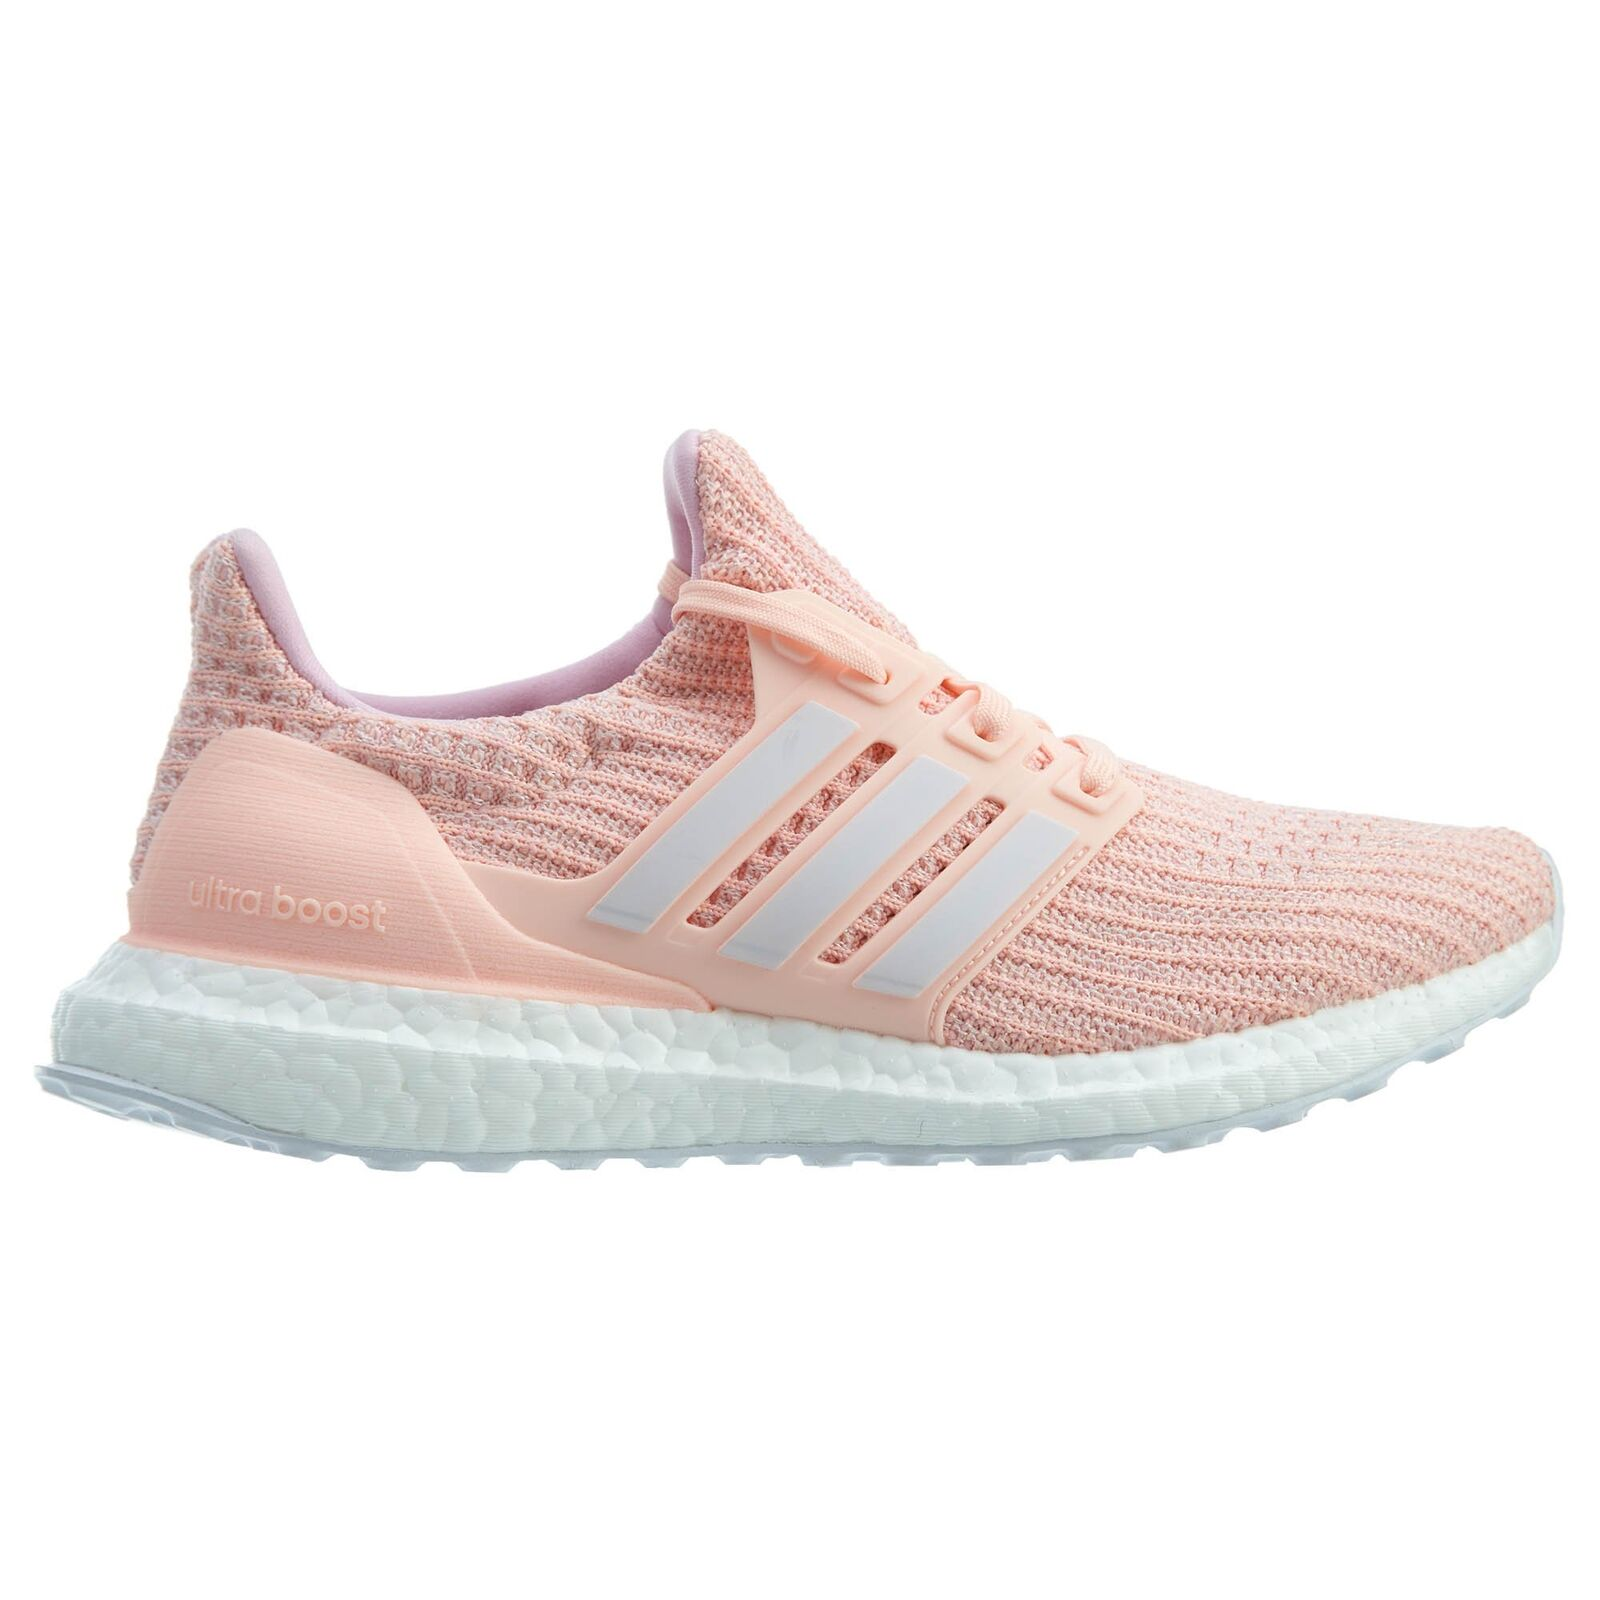 NEW Adidas Ultra Boost 4.0  F36126 Clear orange Women's Running shoes